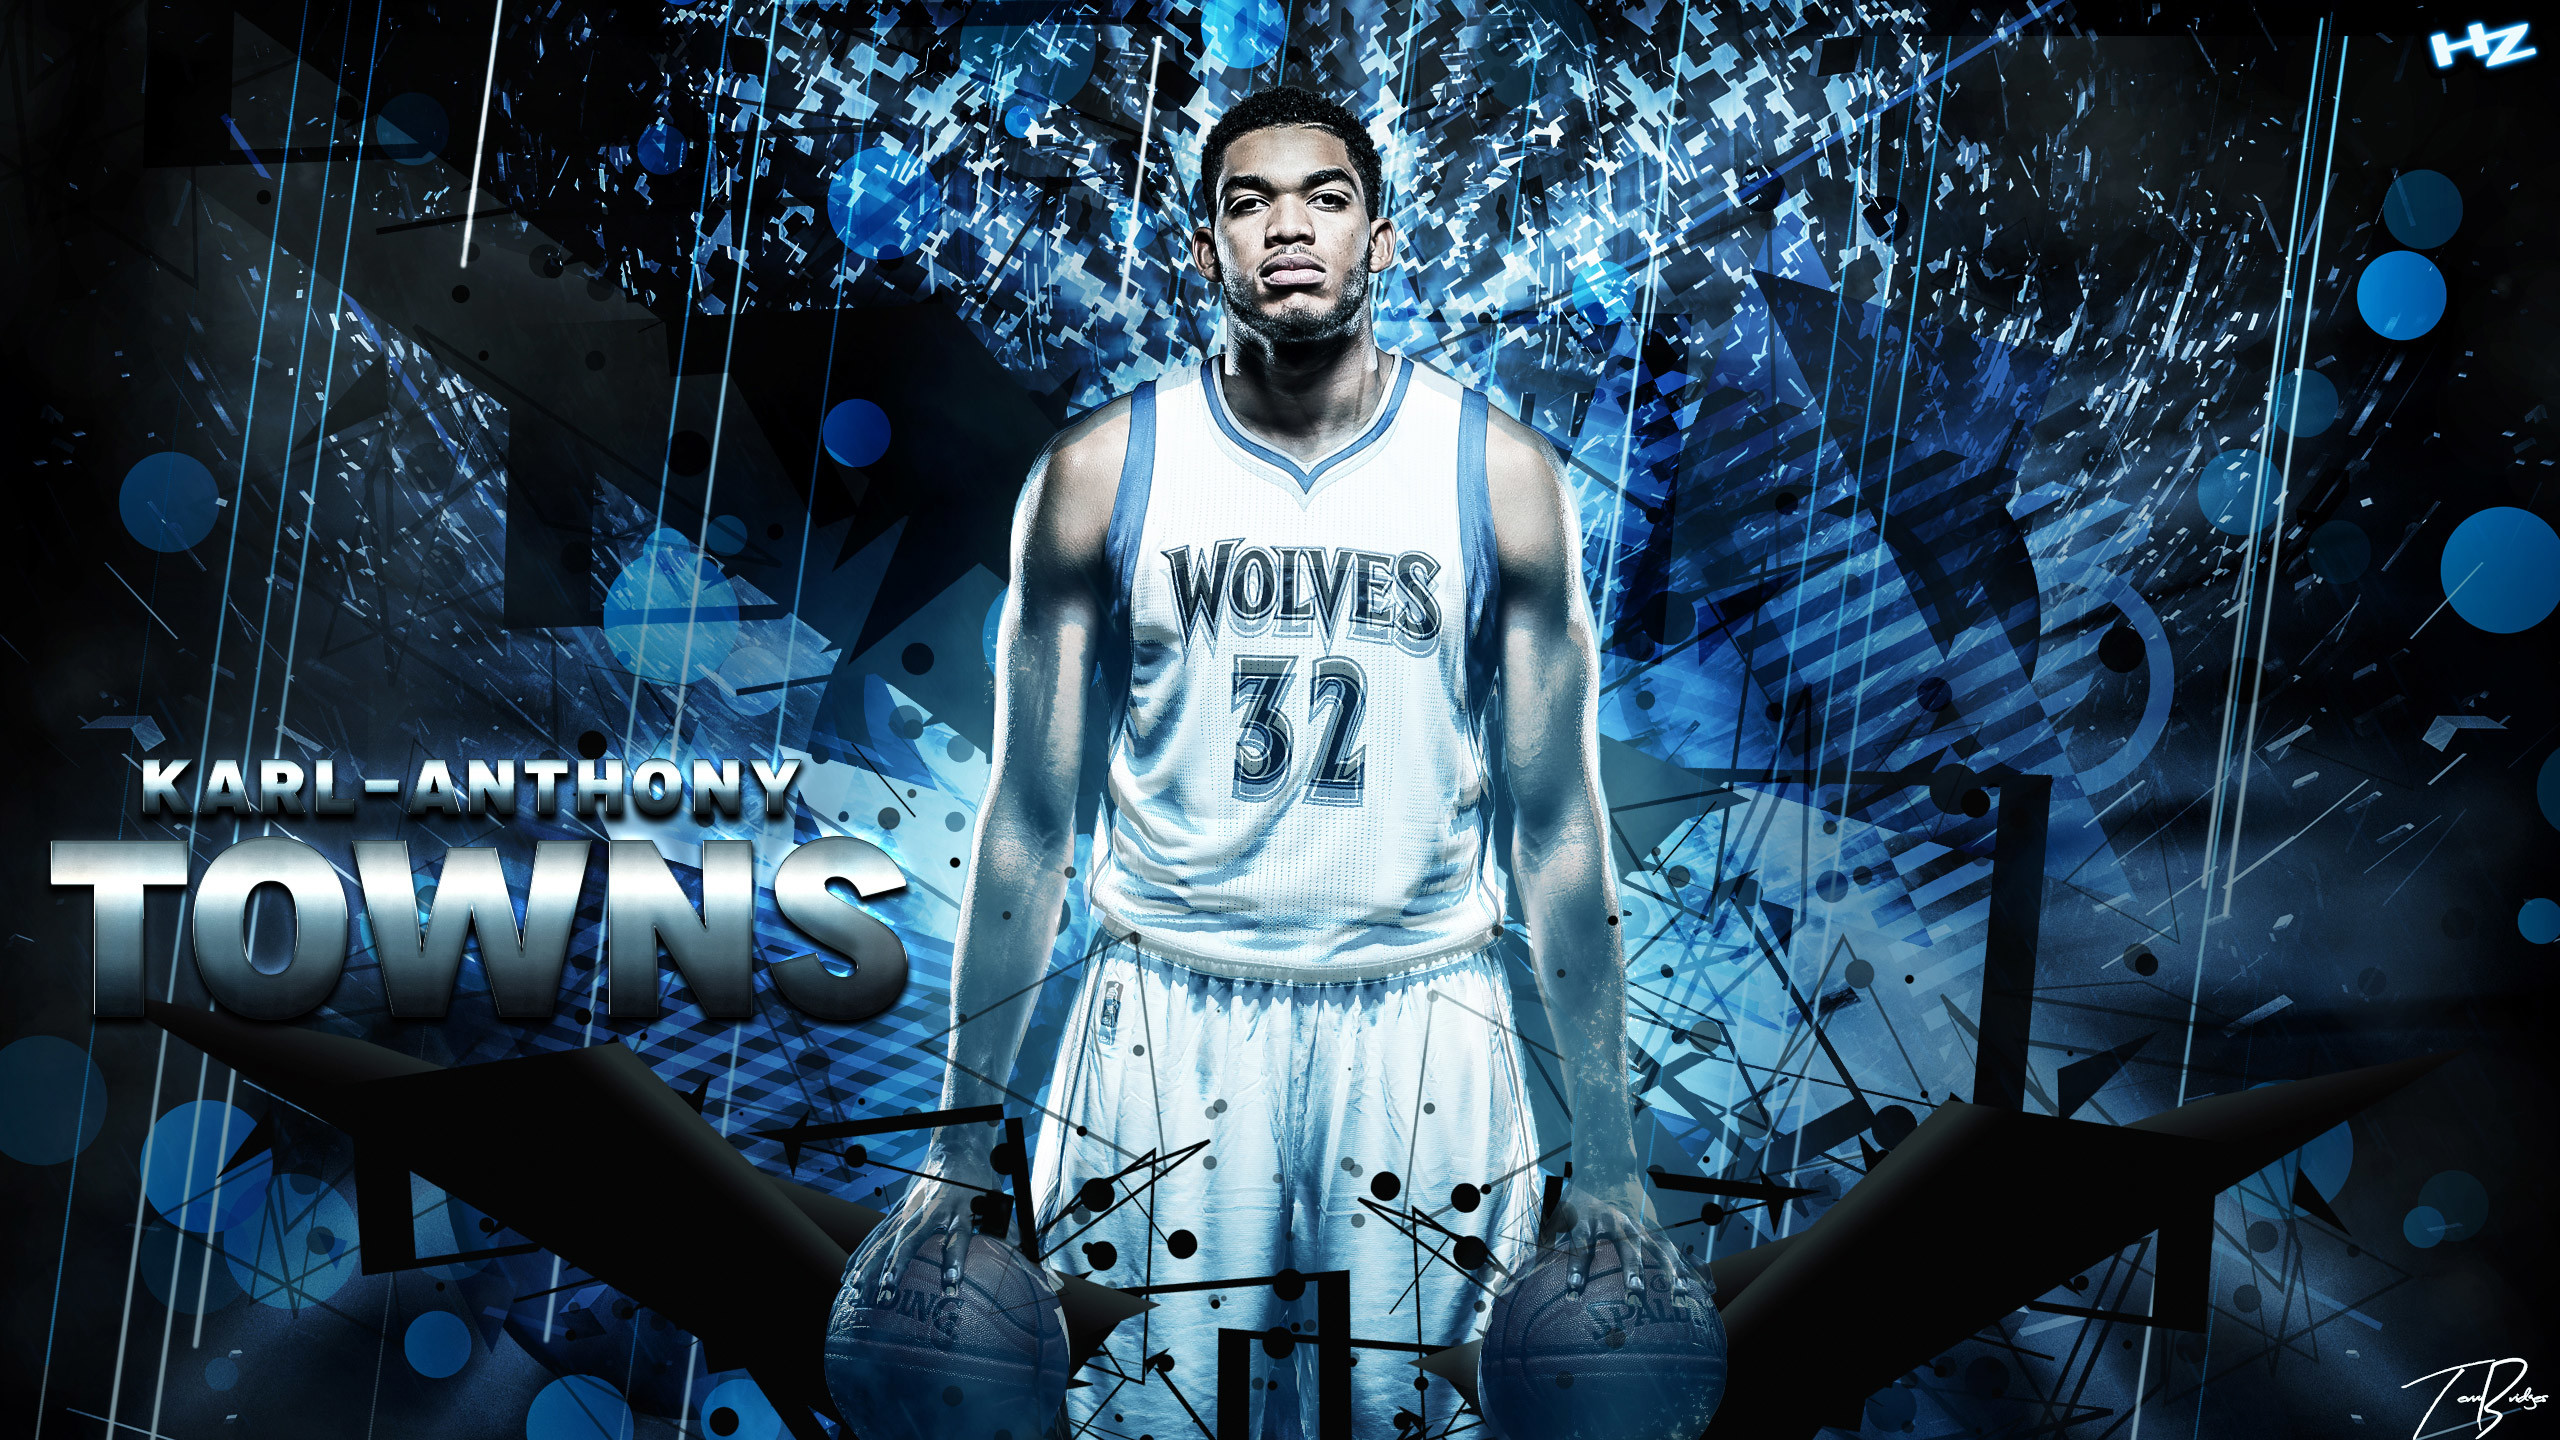 Karl Anthony Towns Wallpapers 81 Images